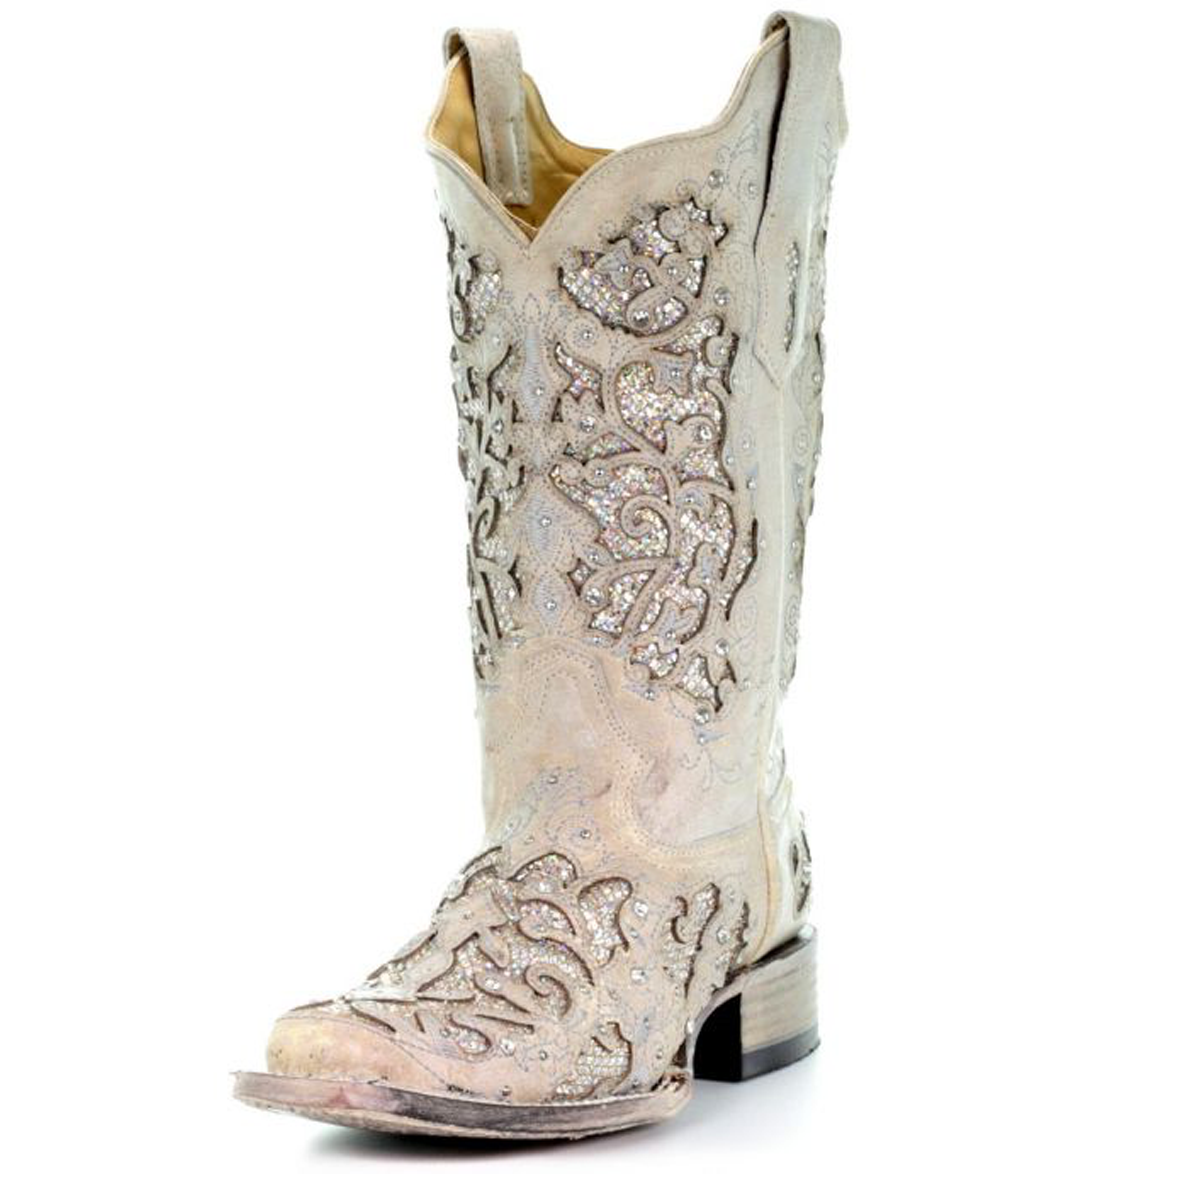 96e562af23b Corral Women's White Glitter & Crystals Square Toe Cowgirl Boot ...